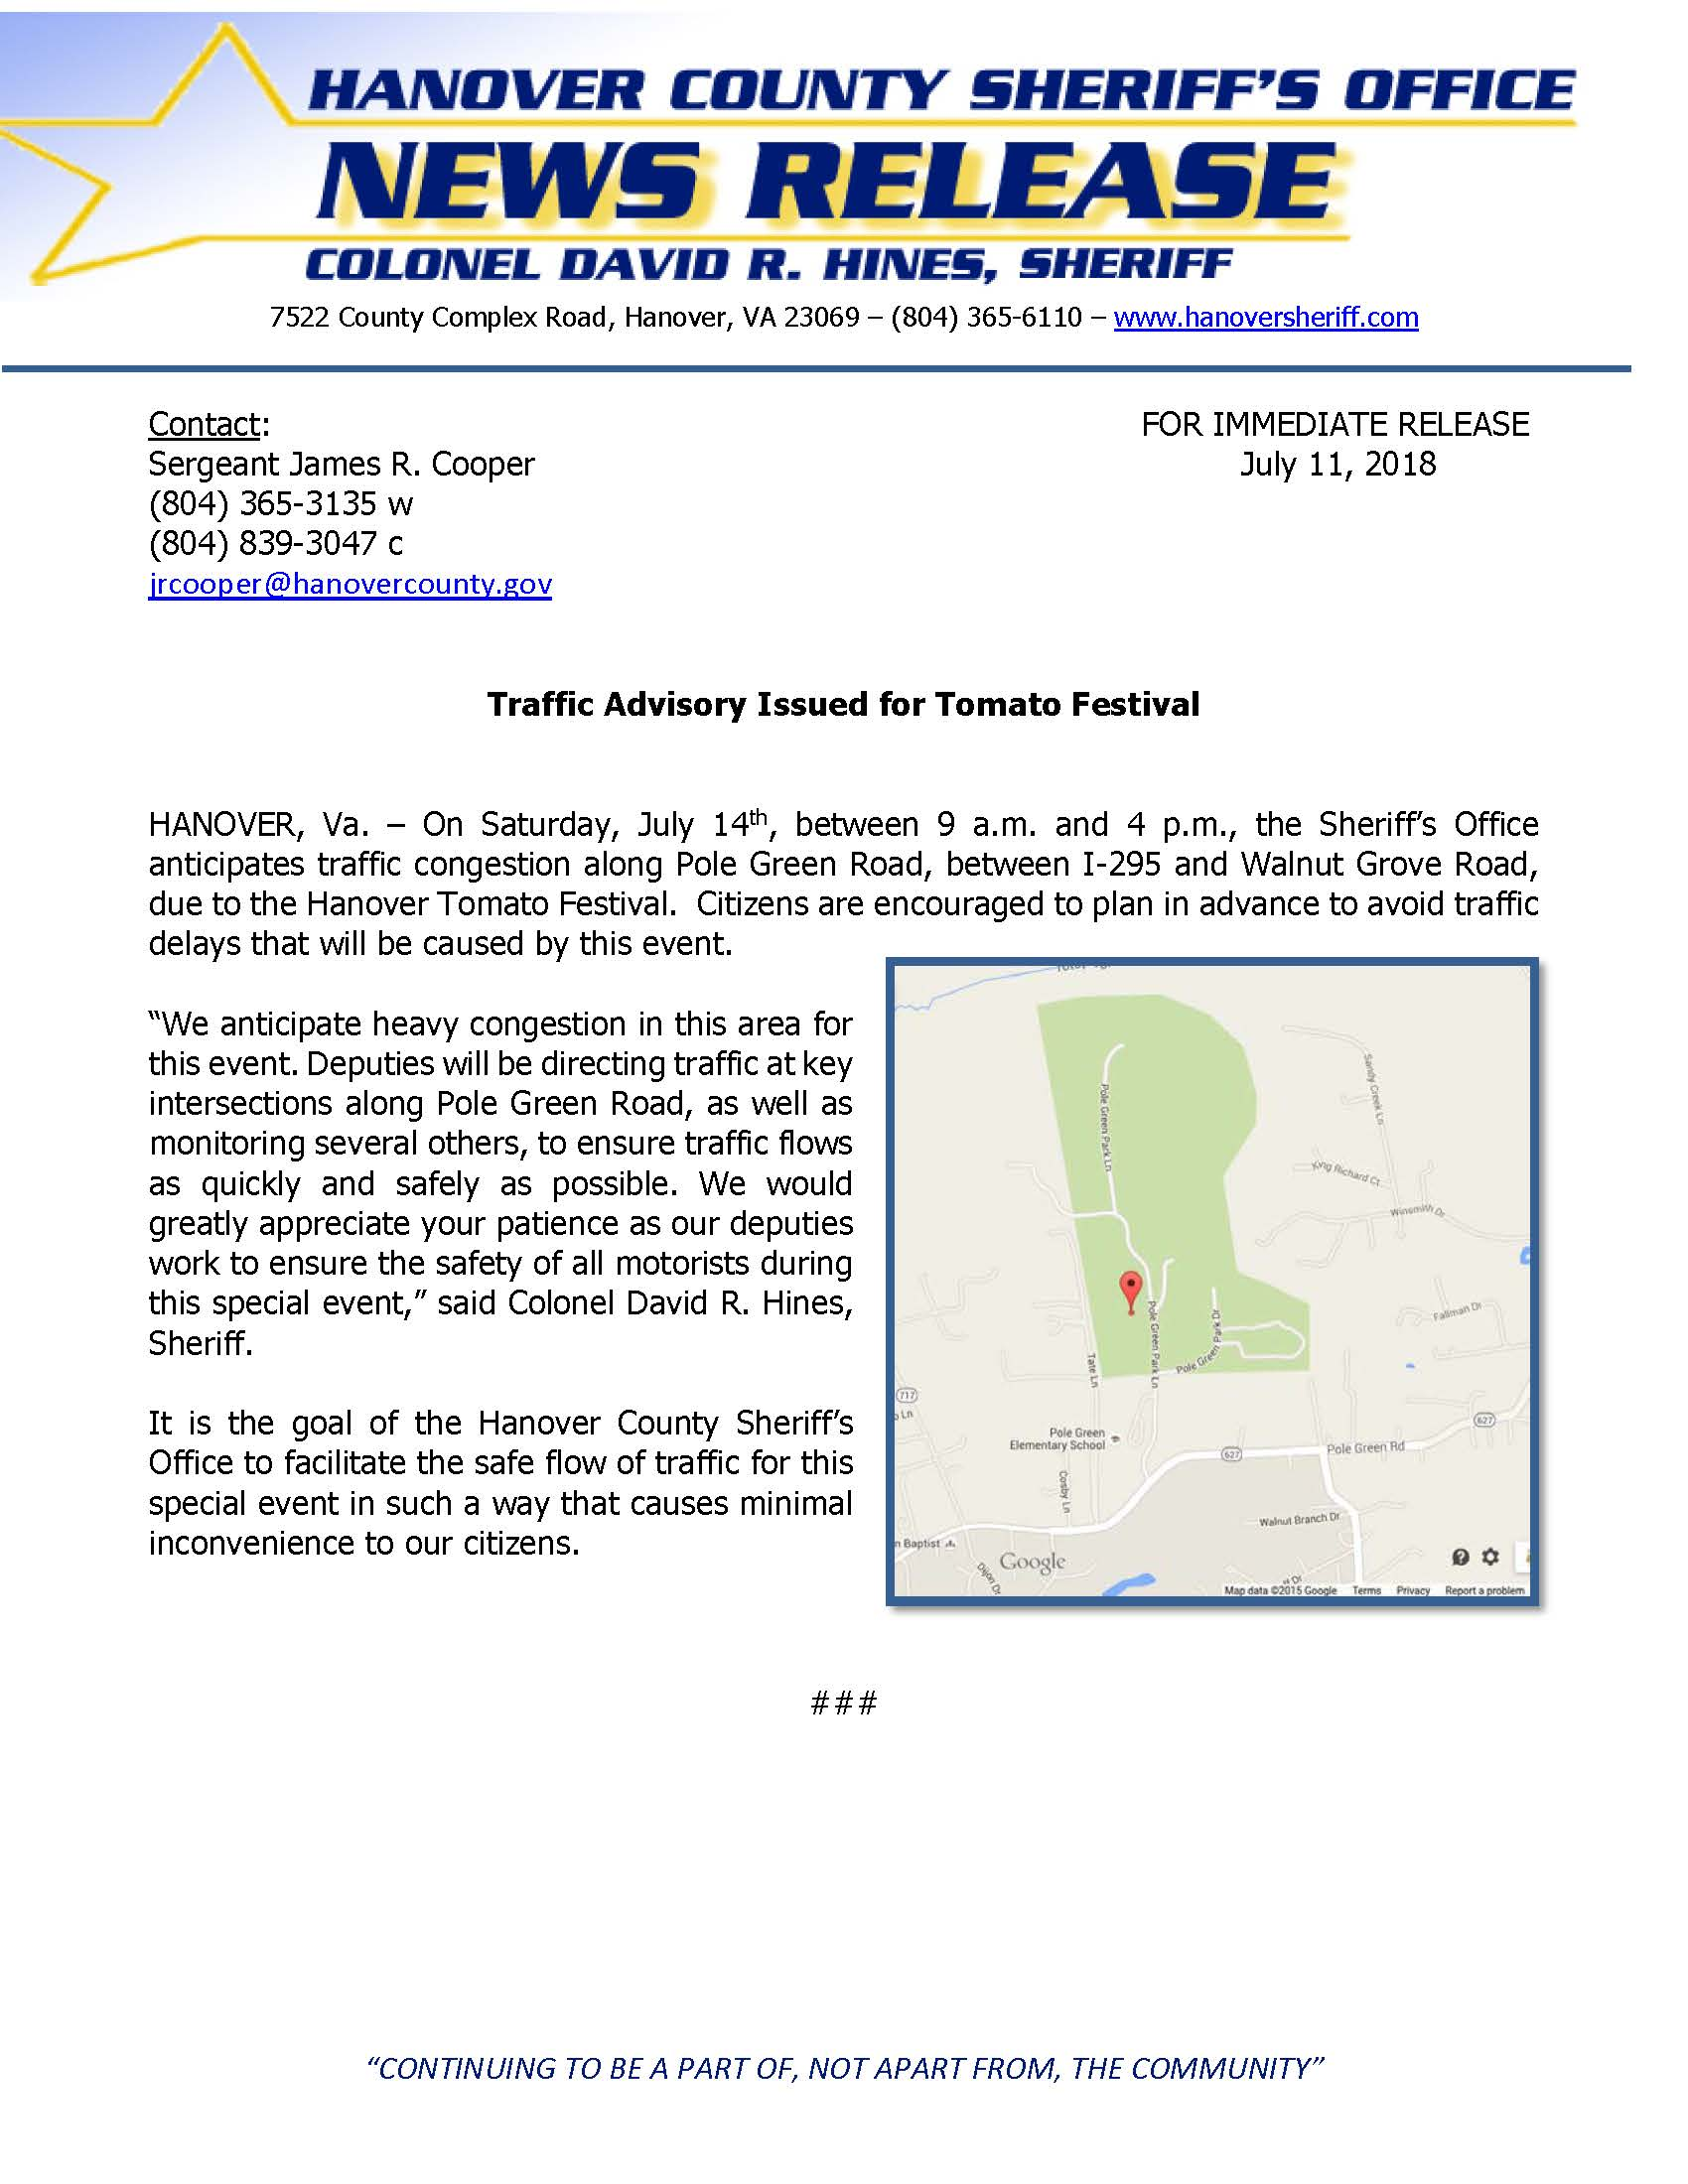 HCSO Issues Traffic Advisory for Tomato Festival 2018.pdf